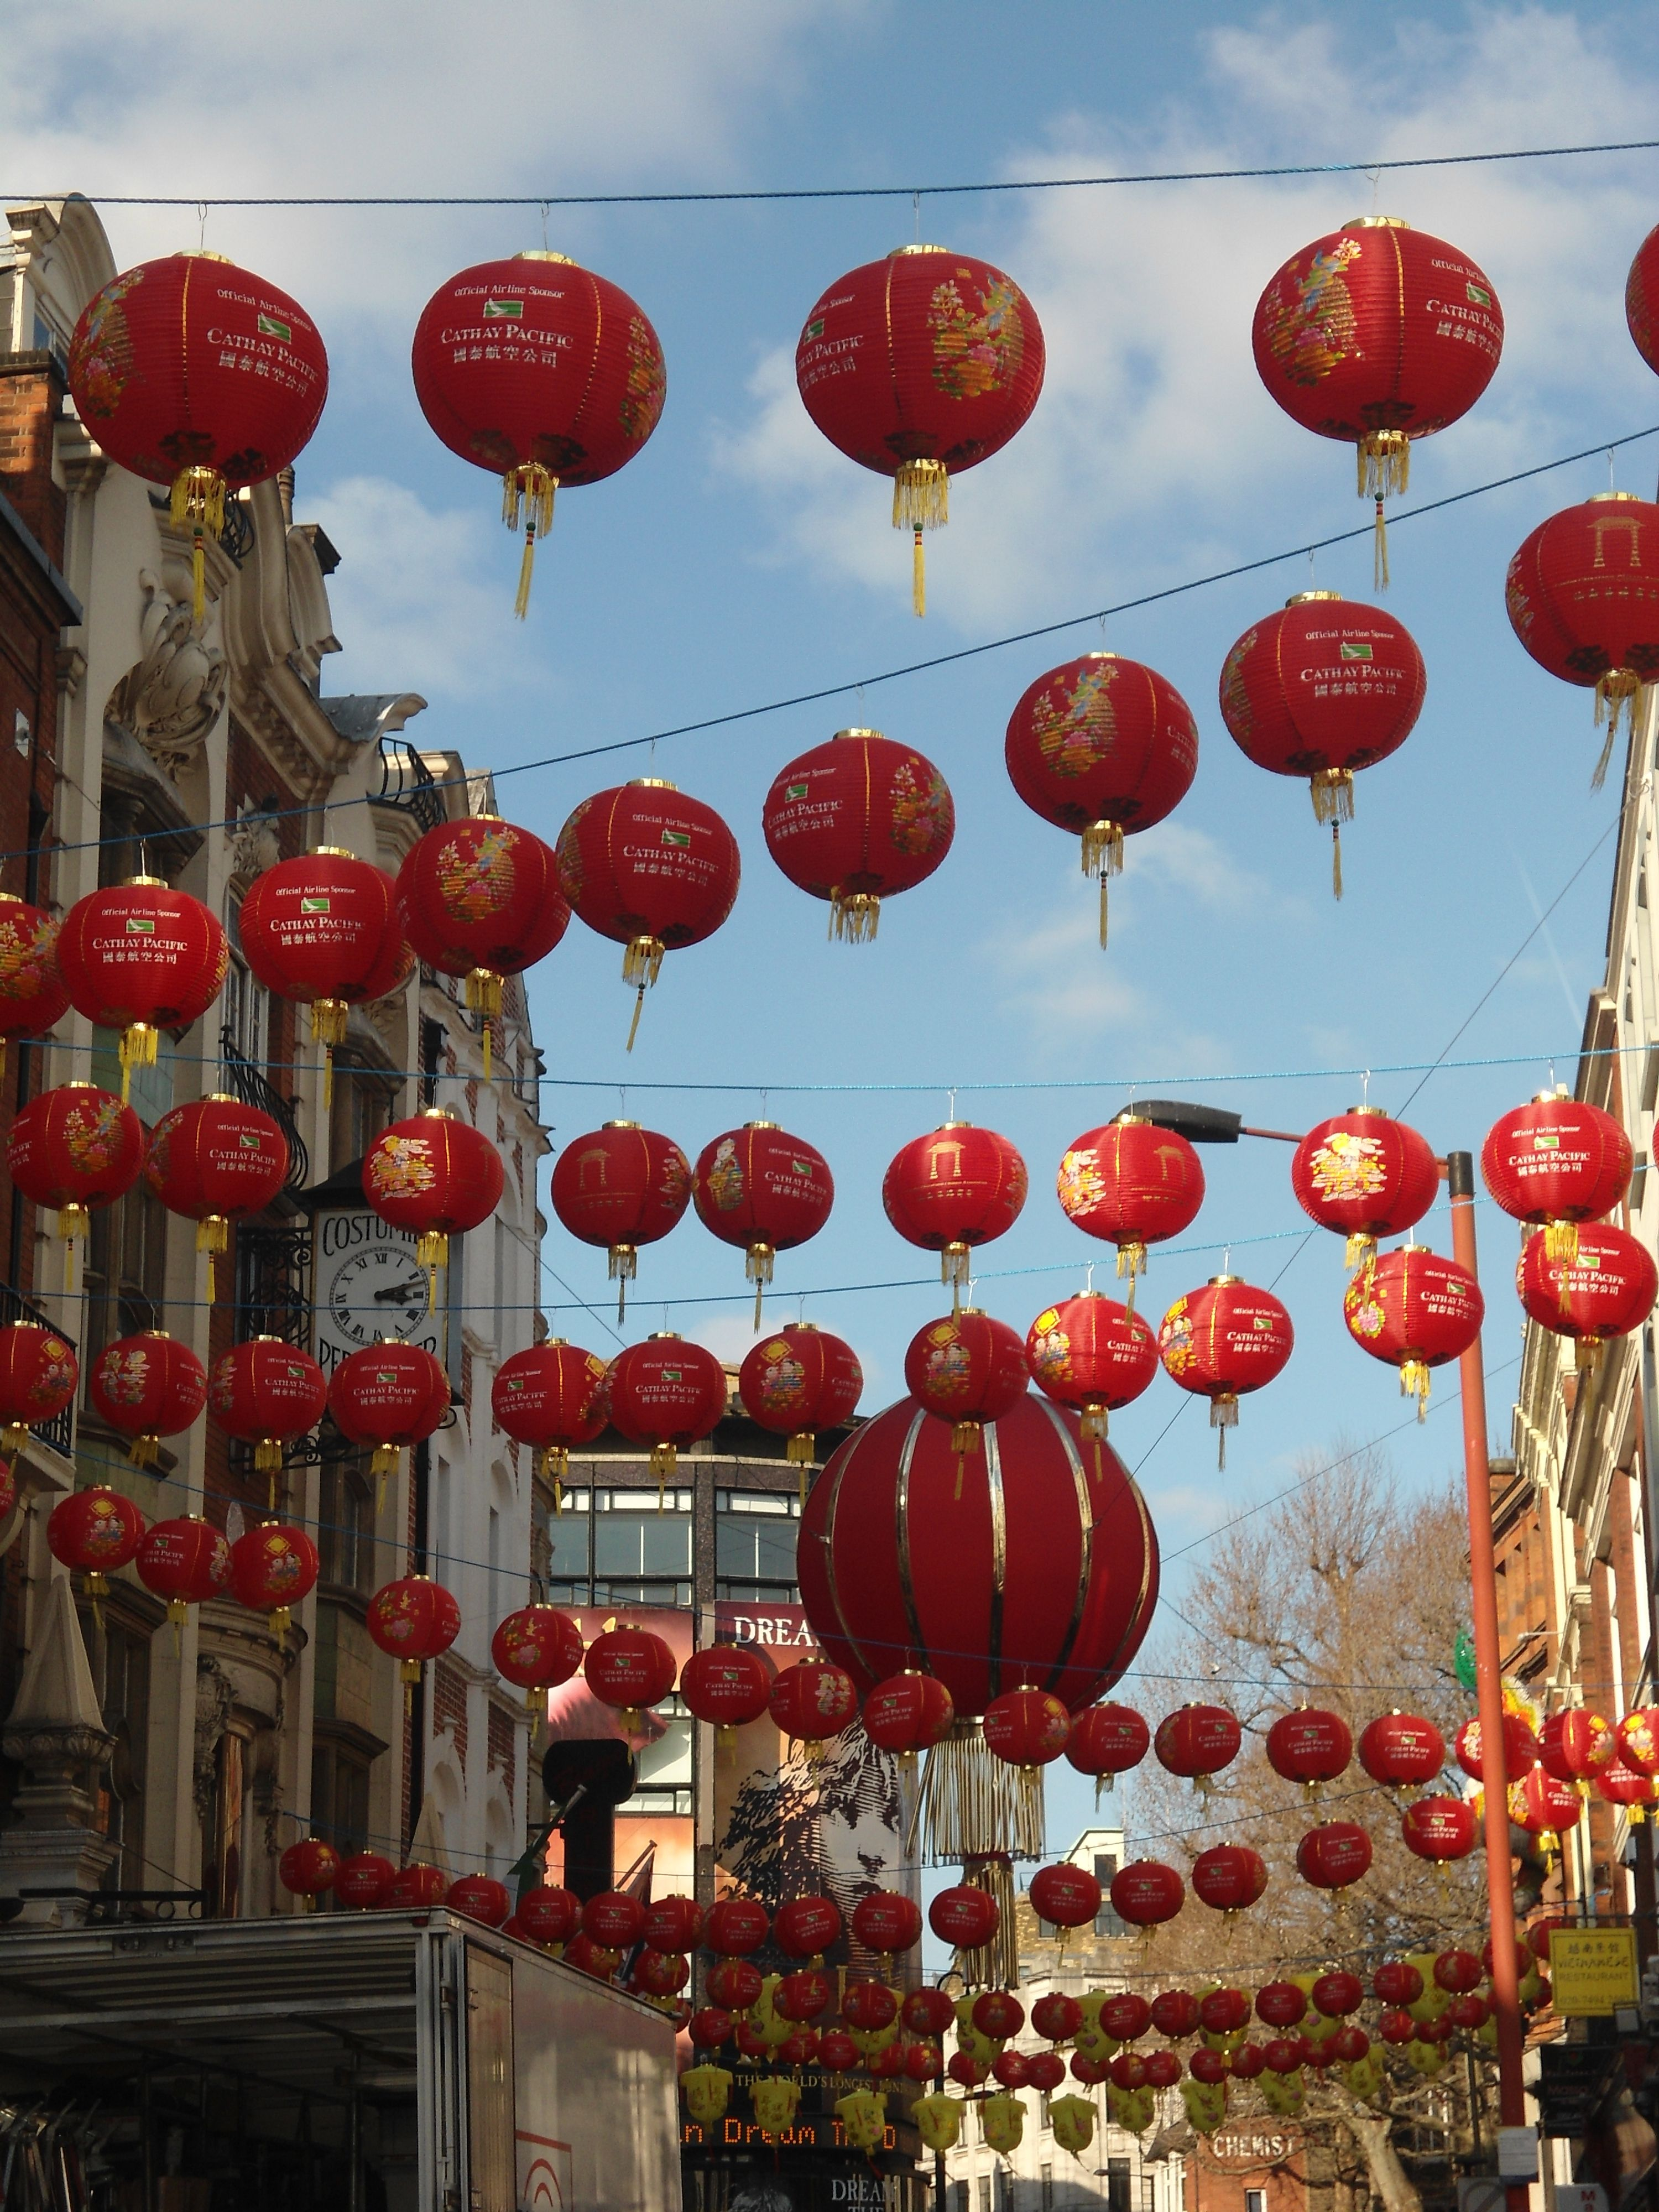 Soho, London (UK)- chinatown is where it's at! Walking through soho is one of my favorite things to do!